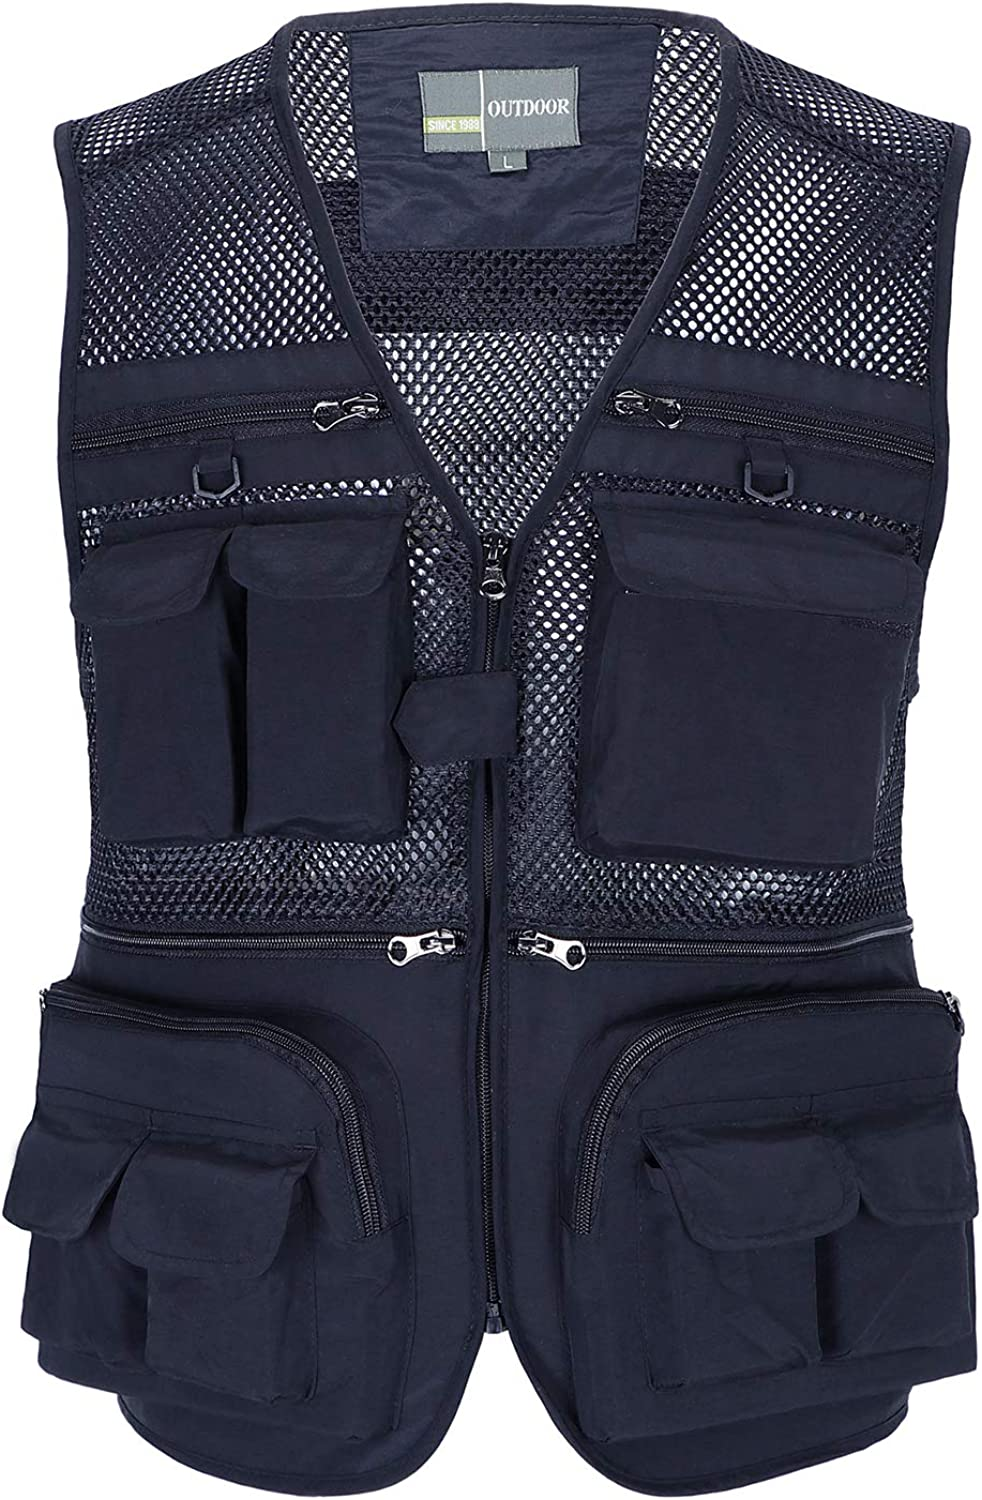 OlyljpinZ Mens Summer Casual Outdoor Work Fishing Travel Photo Vest with Pockets